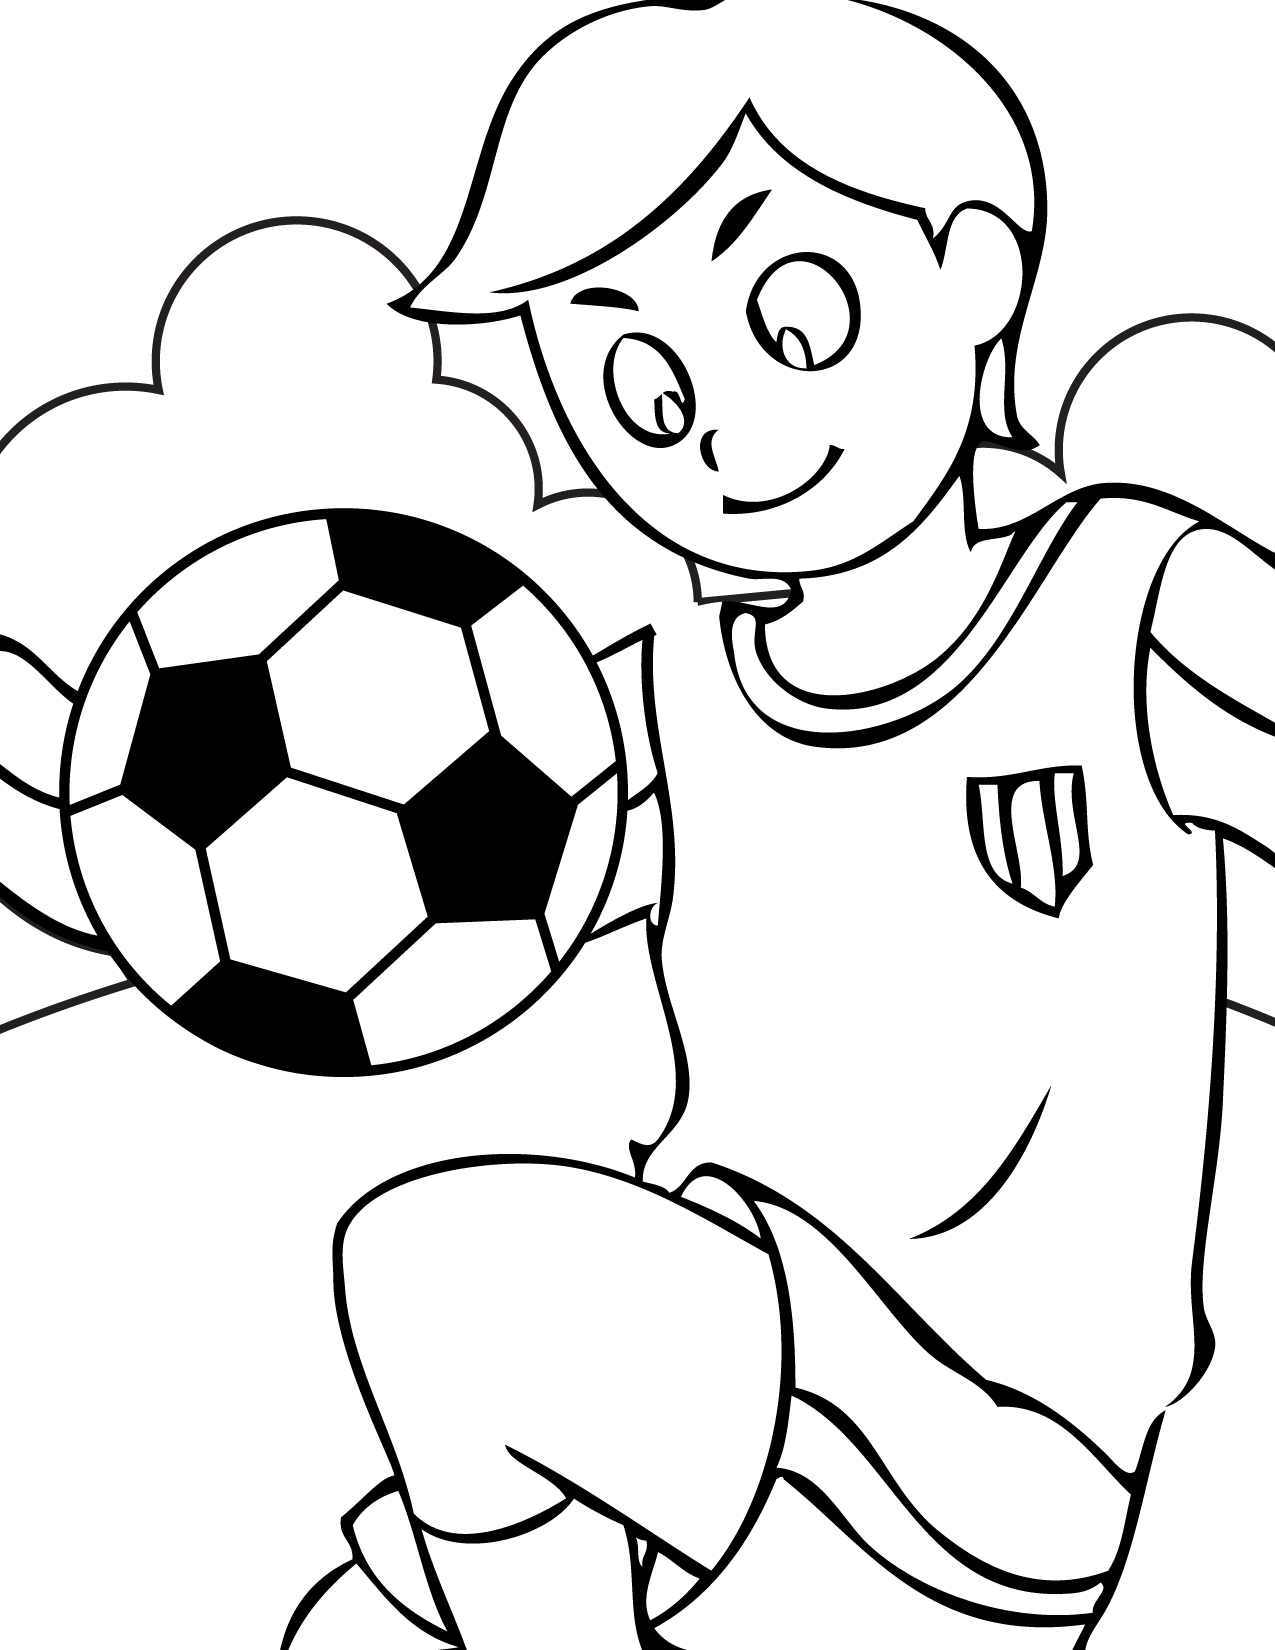 1275x1650 Coloring Pages For Boys Printable Coloring Pages Sports Image